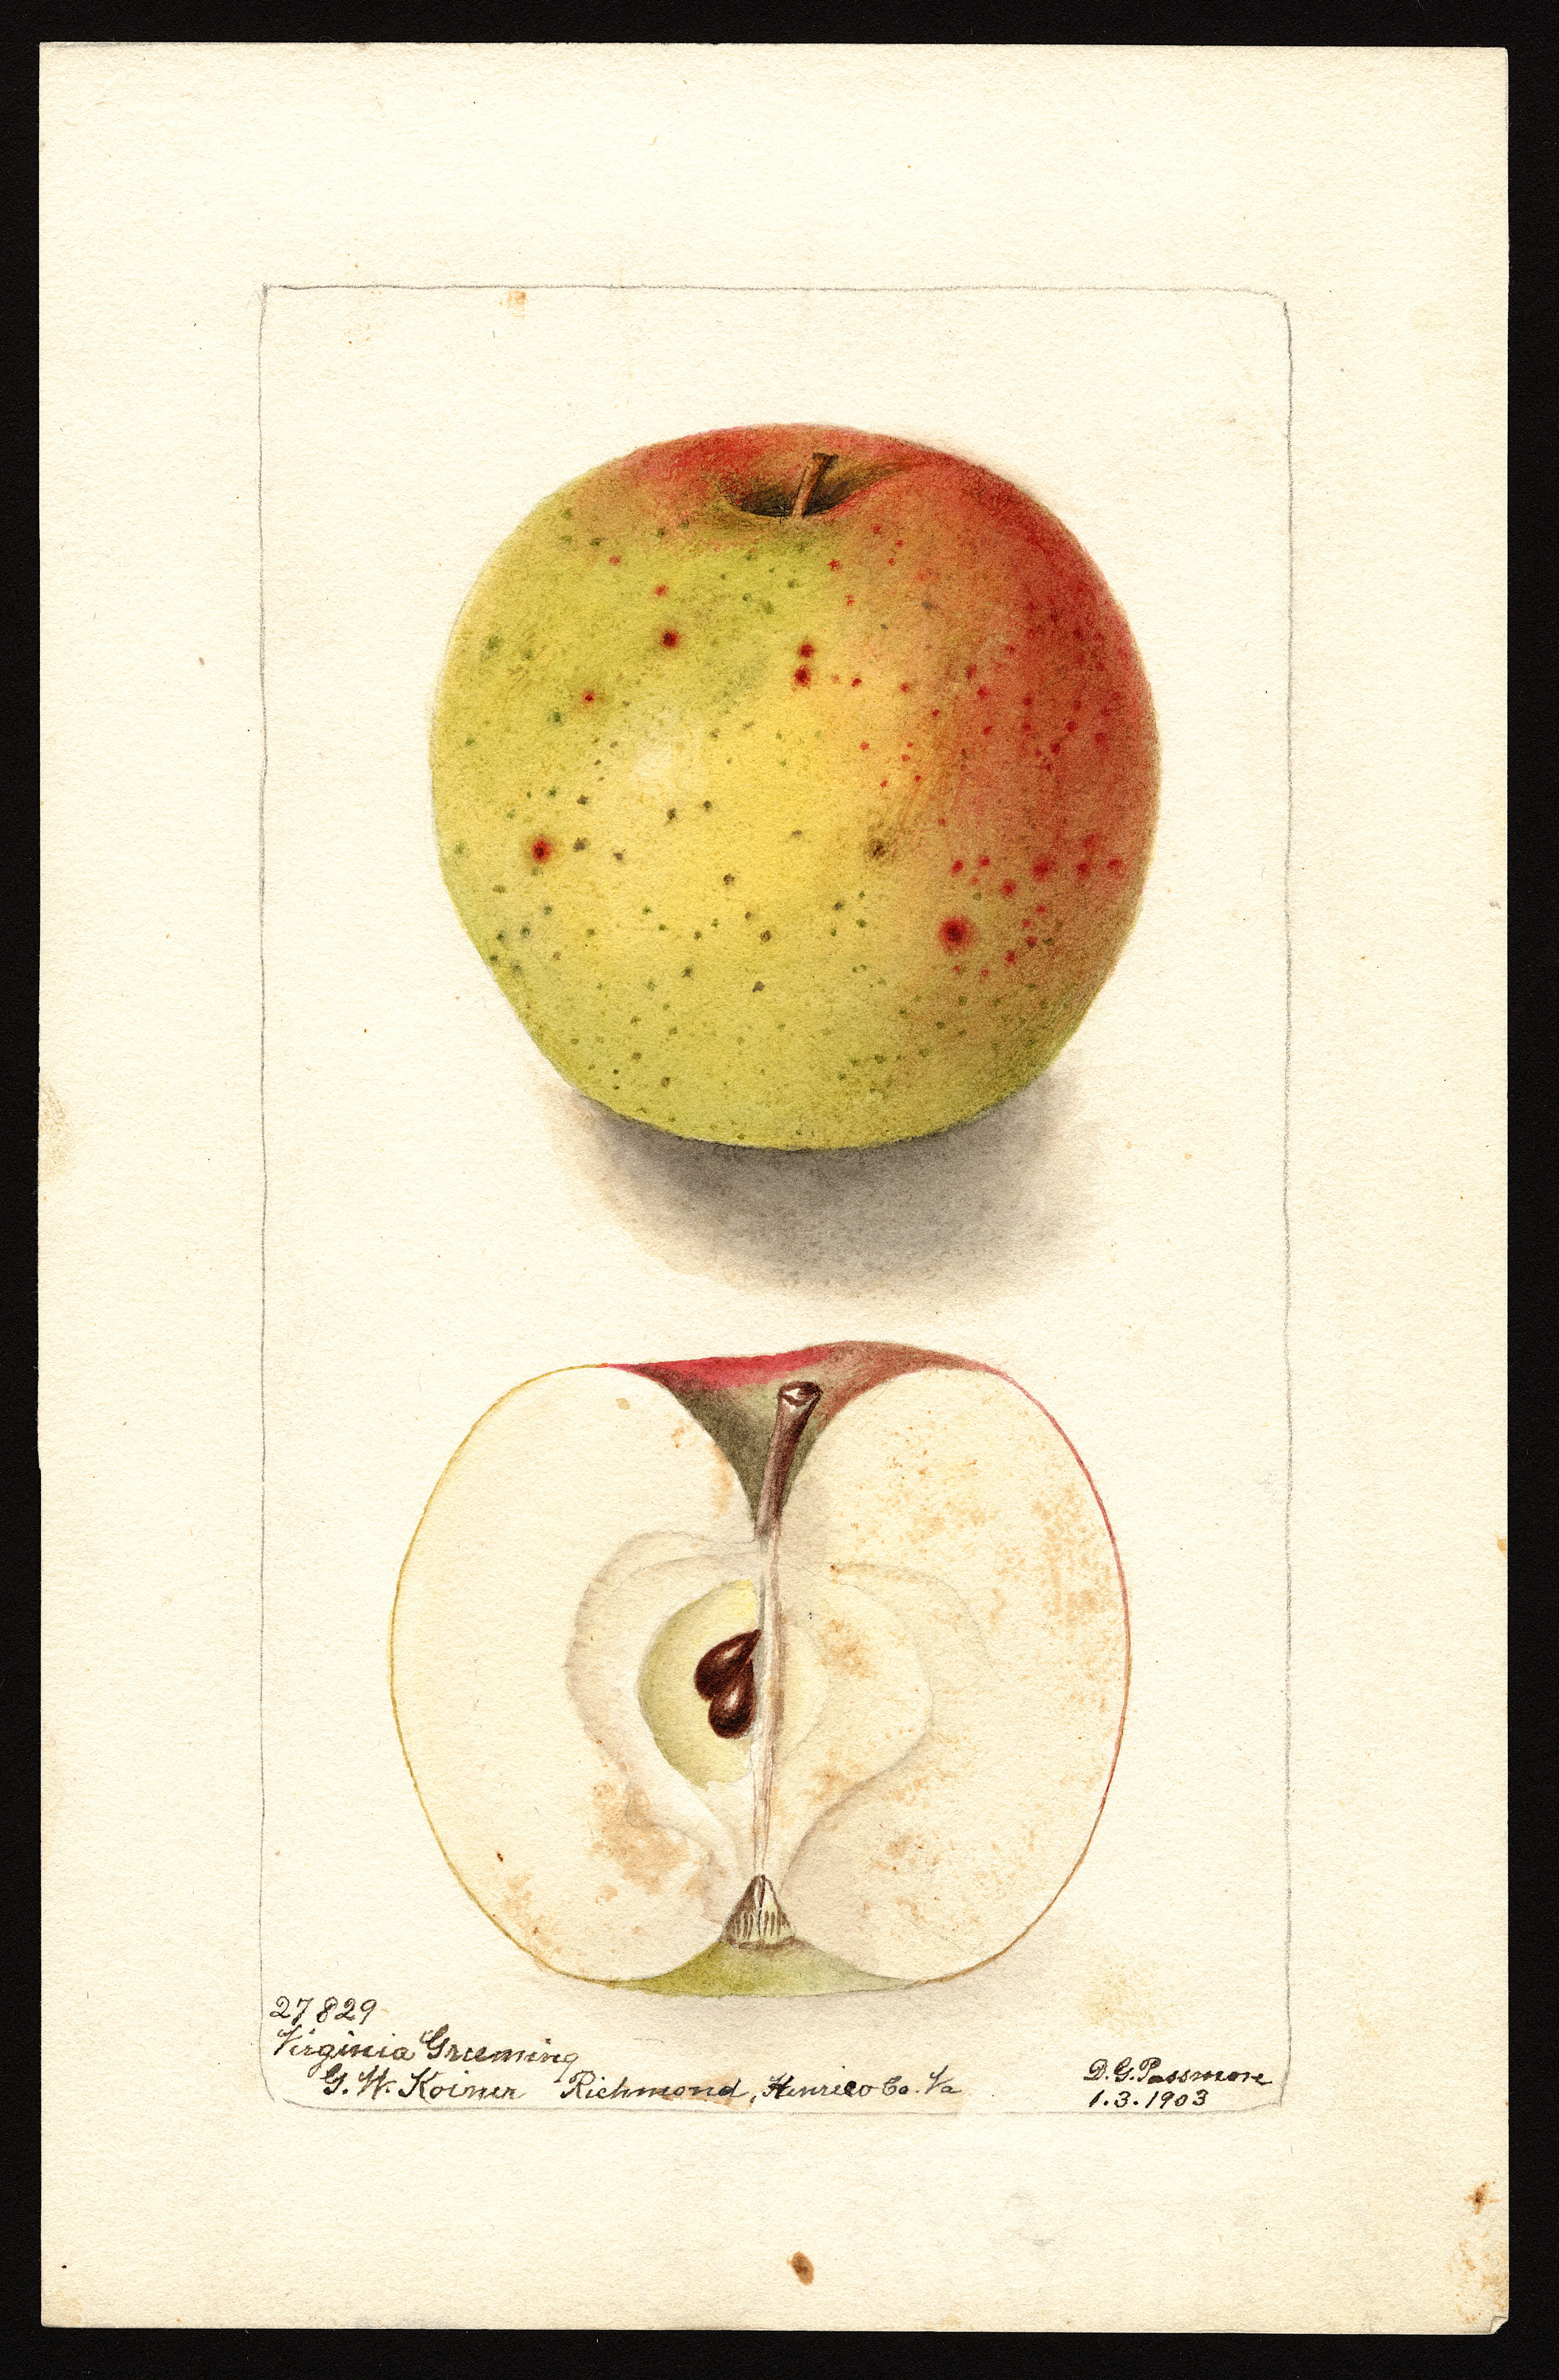 The Virginia Greening apple, as depicted in a drawing from the U.S. Department of Agriculture (USDA) Pomological Watercolor Collection.